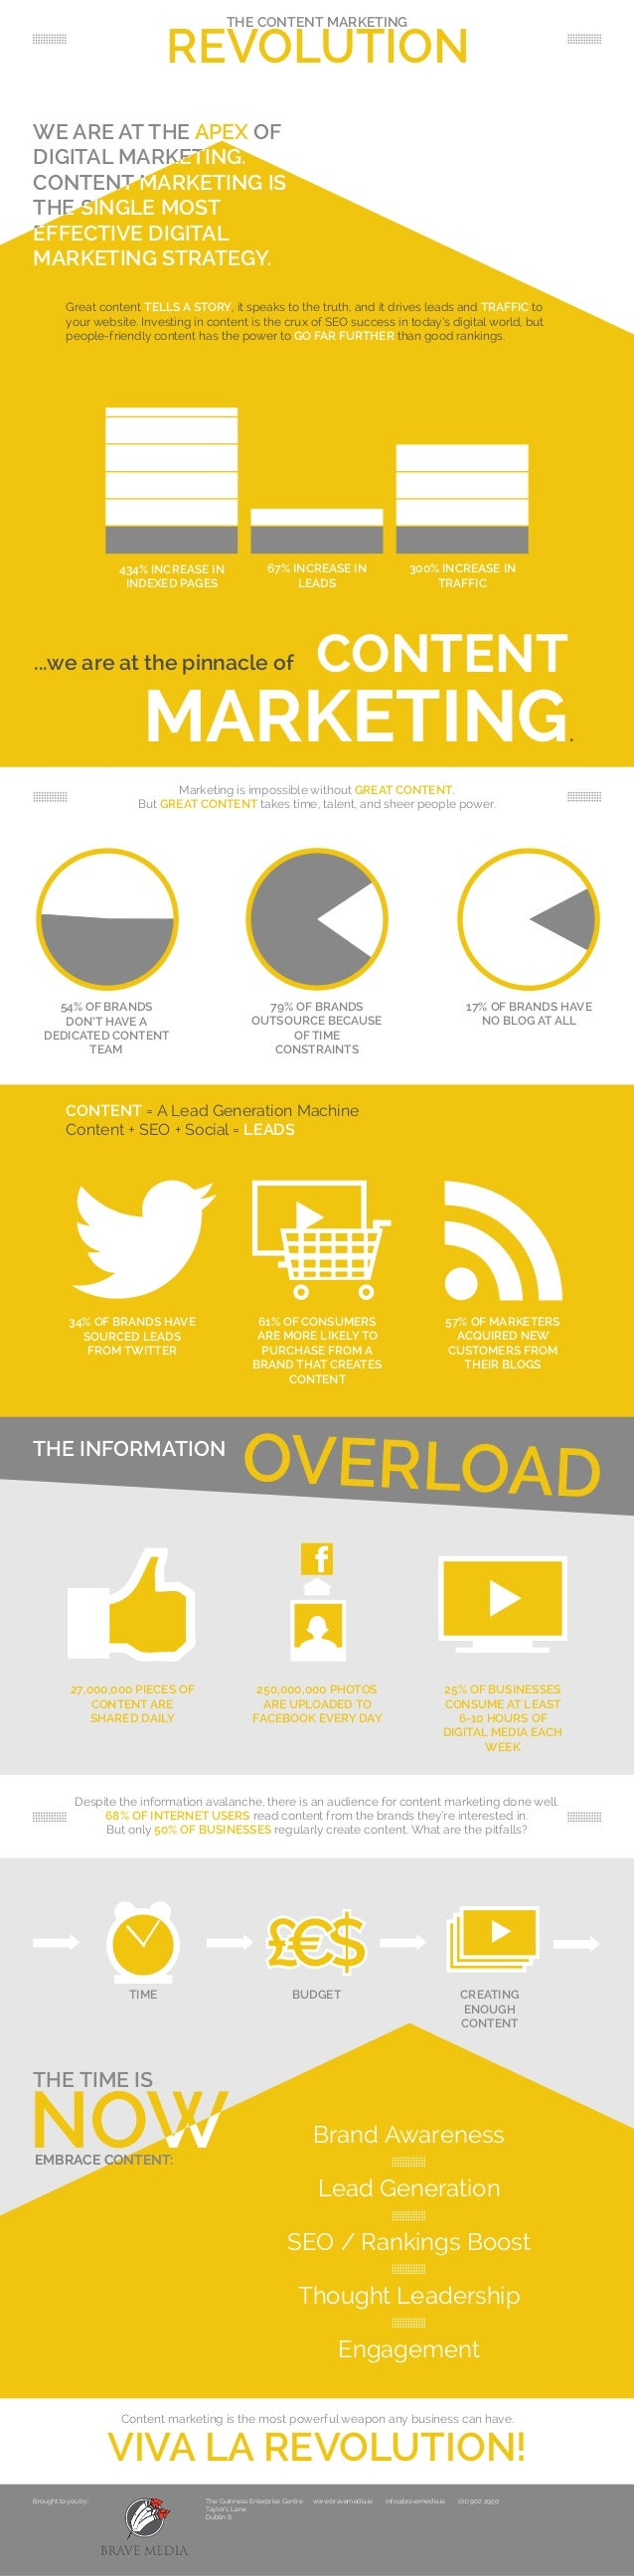 The Content Marketing Revolution - Infographic